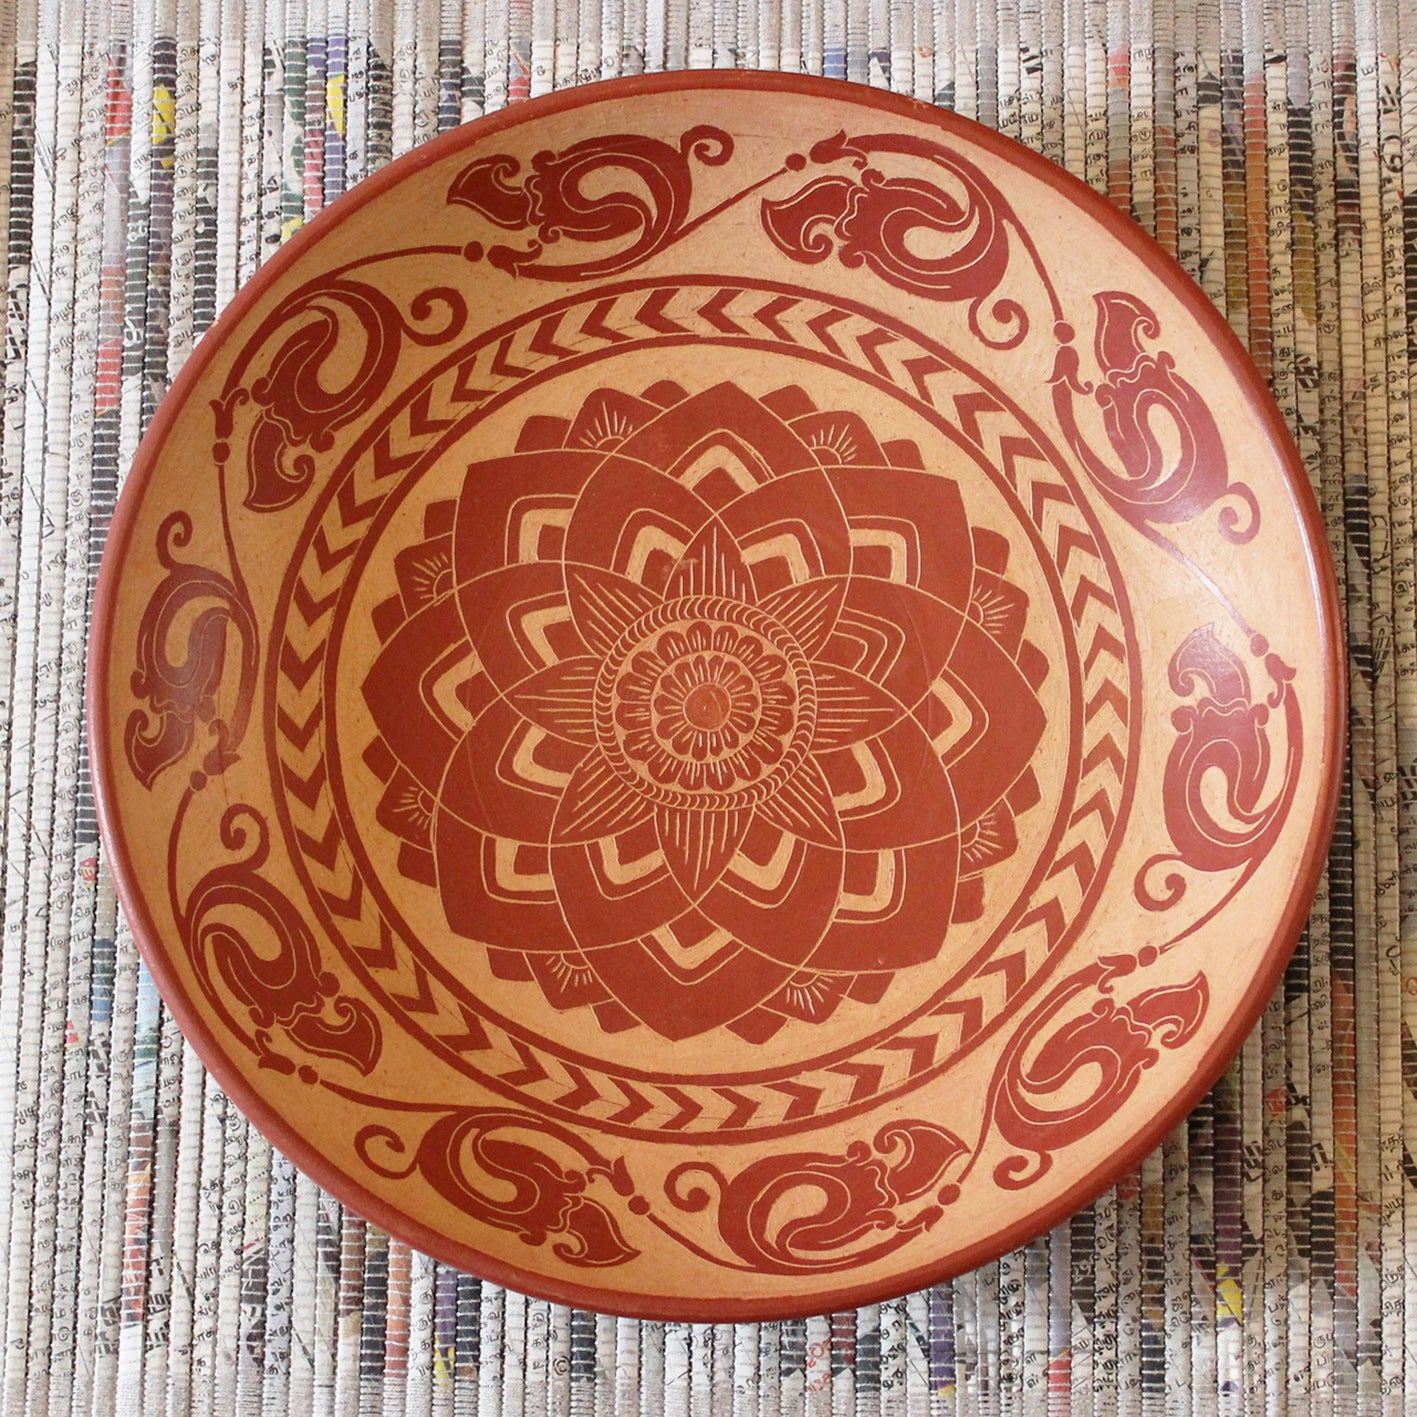 Terracotta pottery plate with hand-etched design